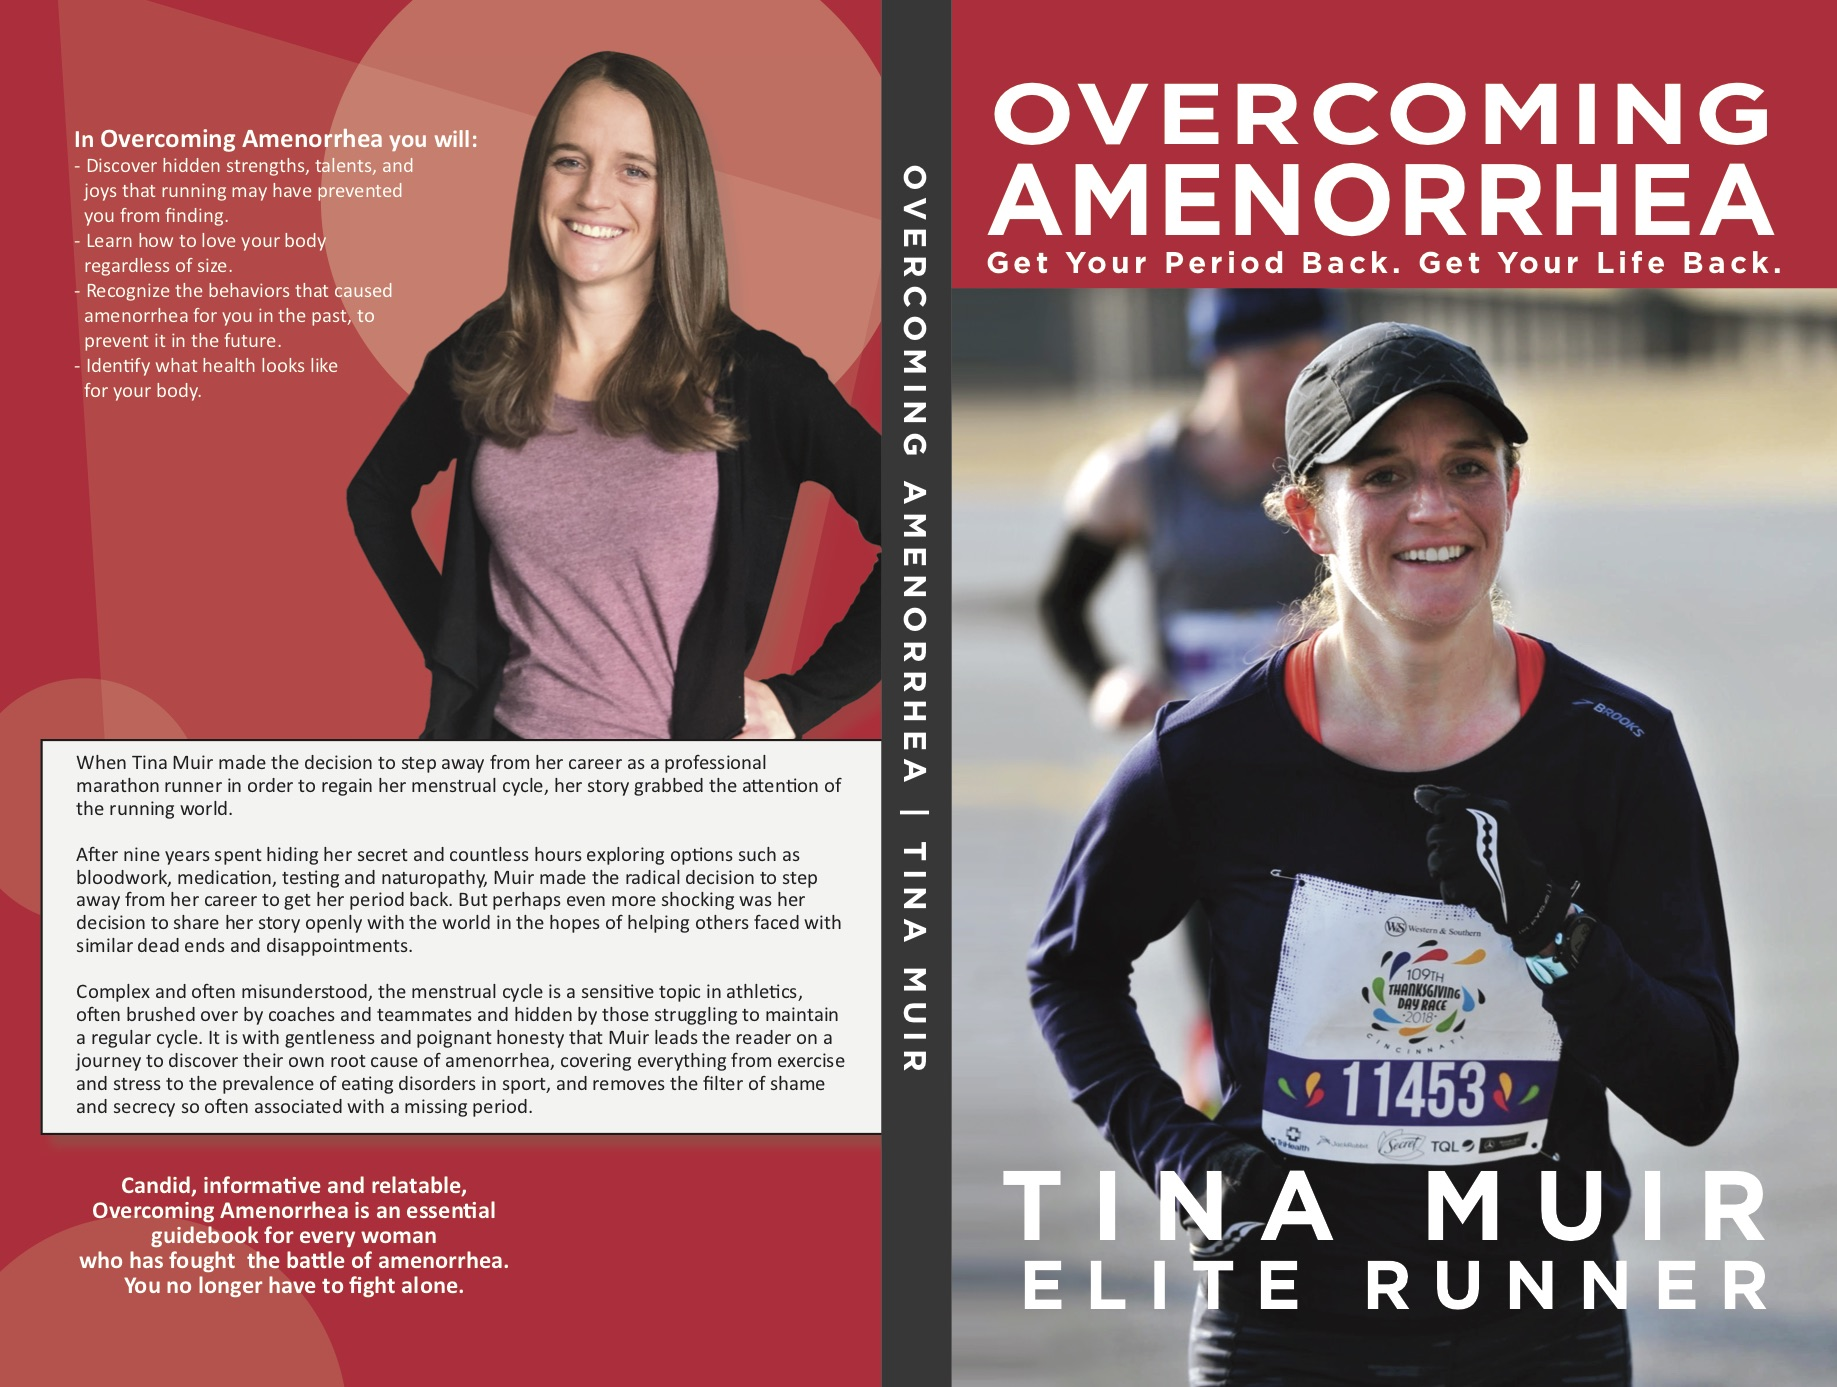 Overcoming Amenorrehea. Get Your Period Back. Get Your Life Back • Running  For Real